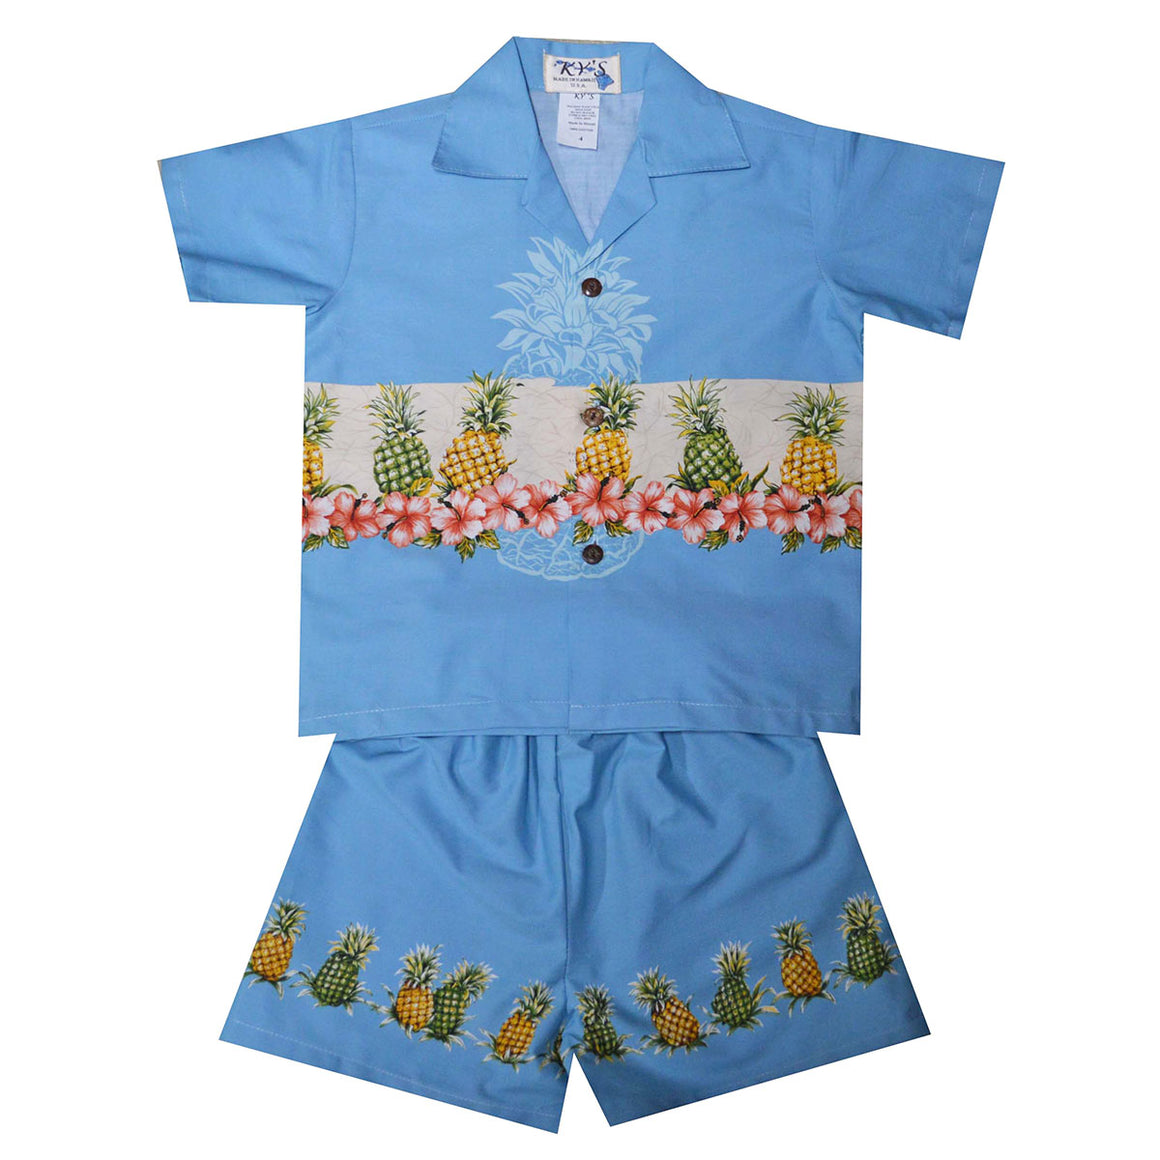 65731e97 Boy's Hawaiian Shirt and Shorts Sets - AlohaFunWear.com